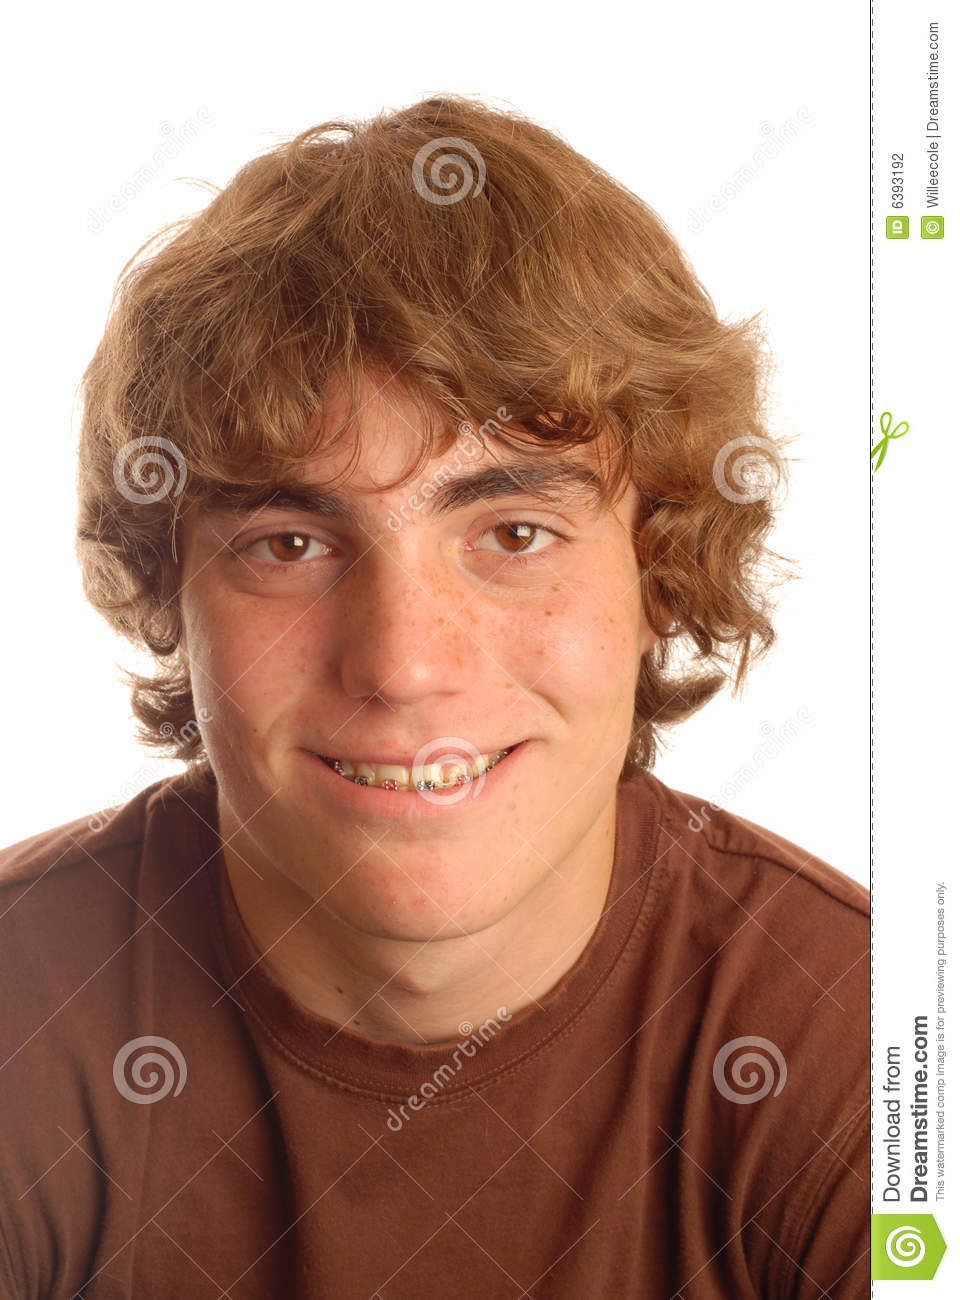 Attractive fourteen year old boy with braces on his teeth